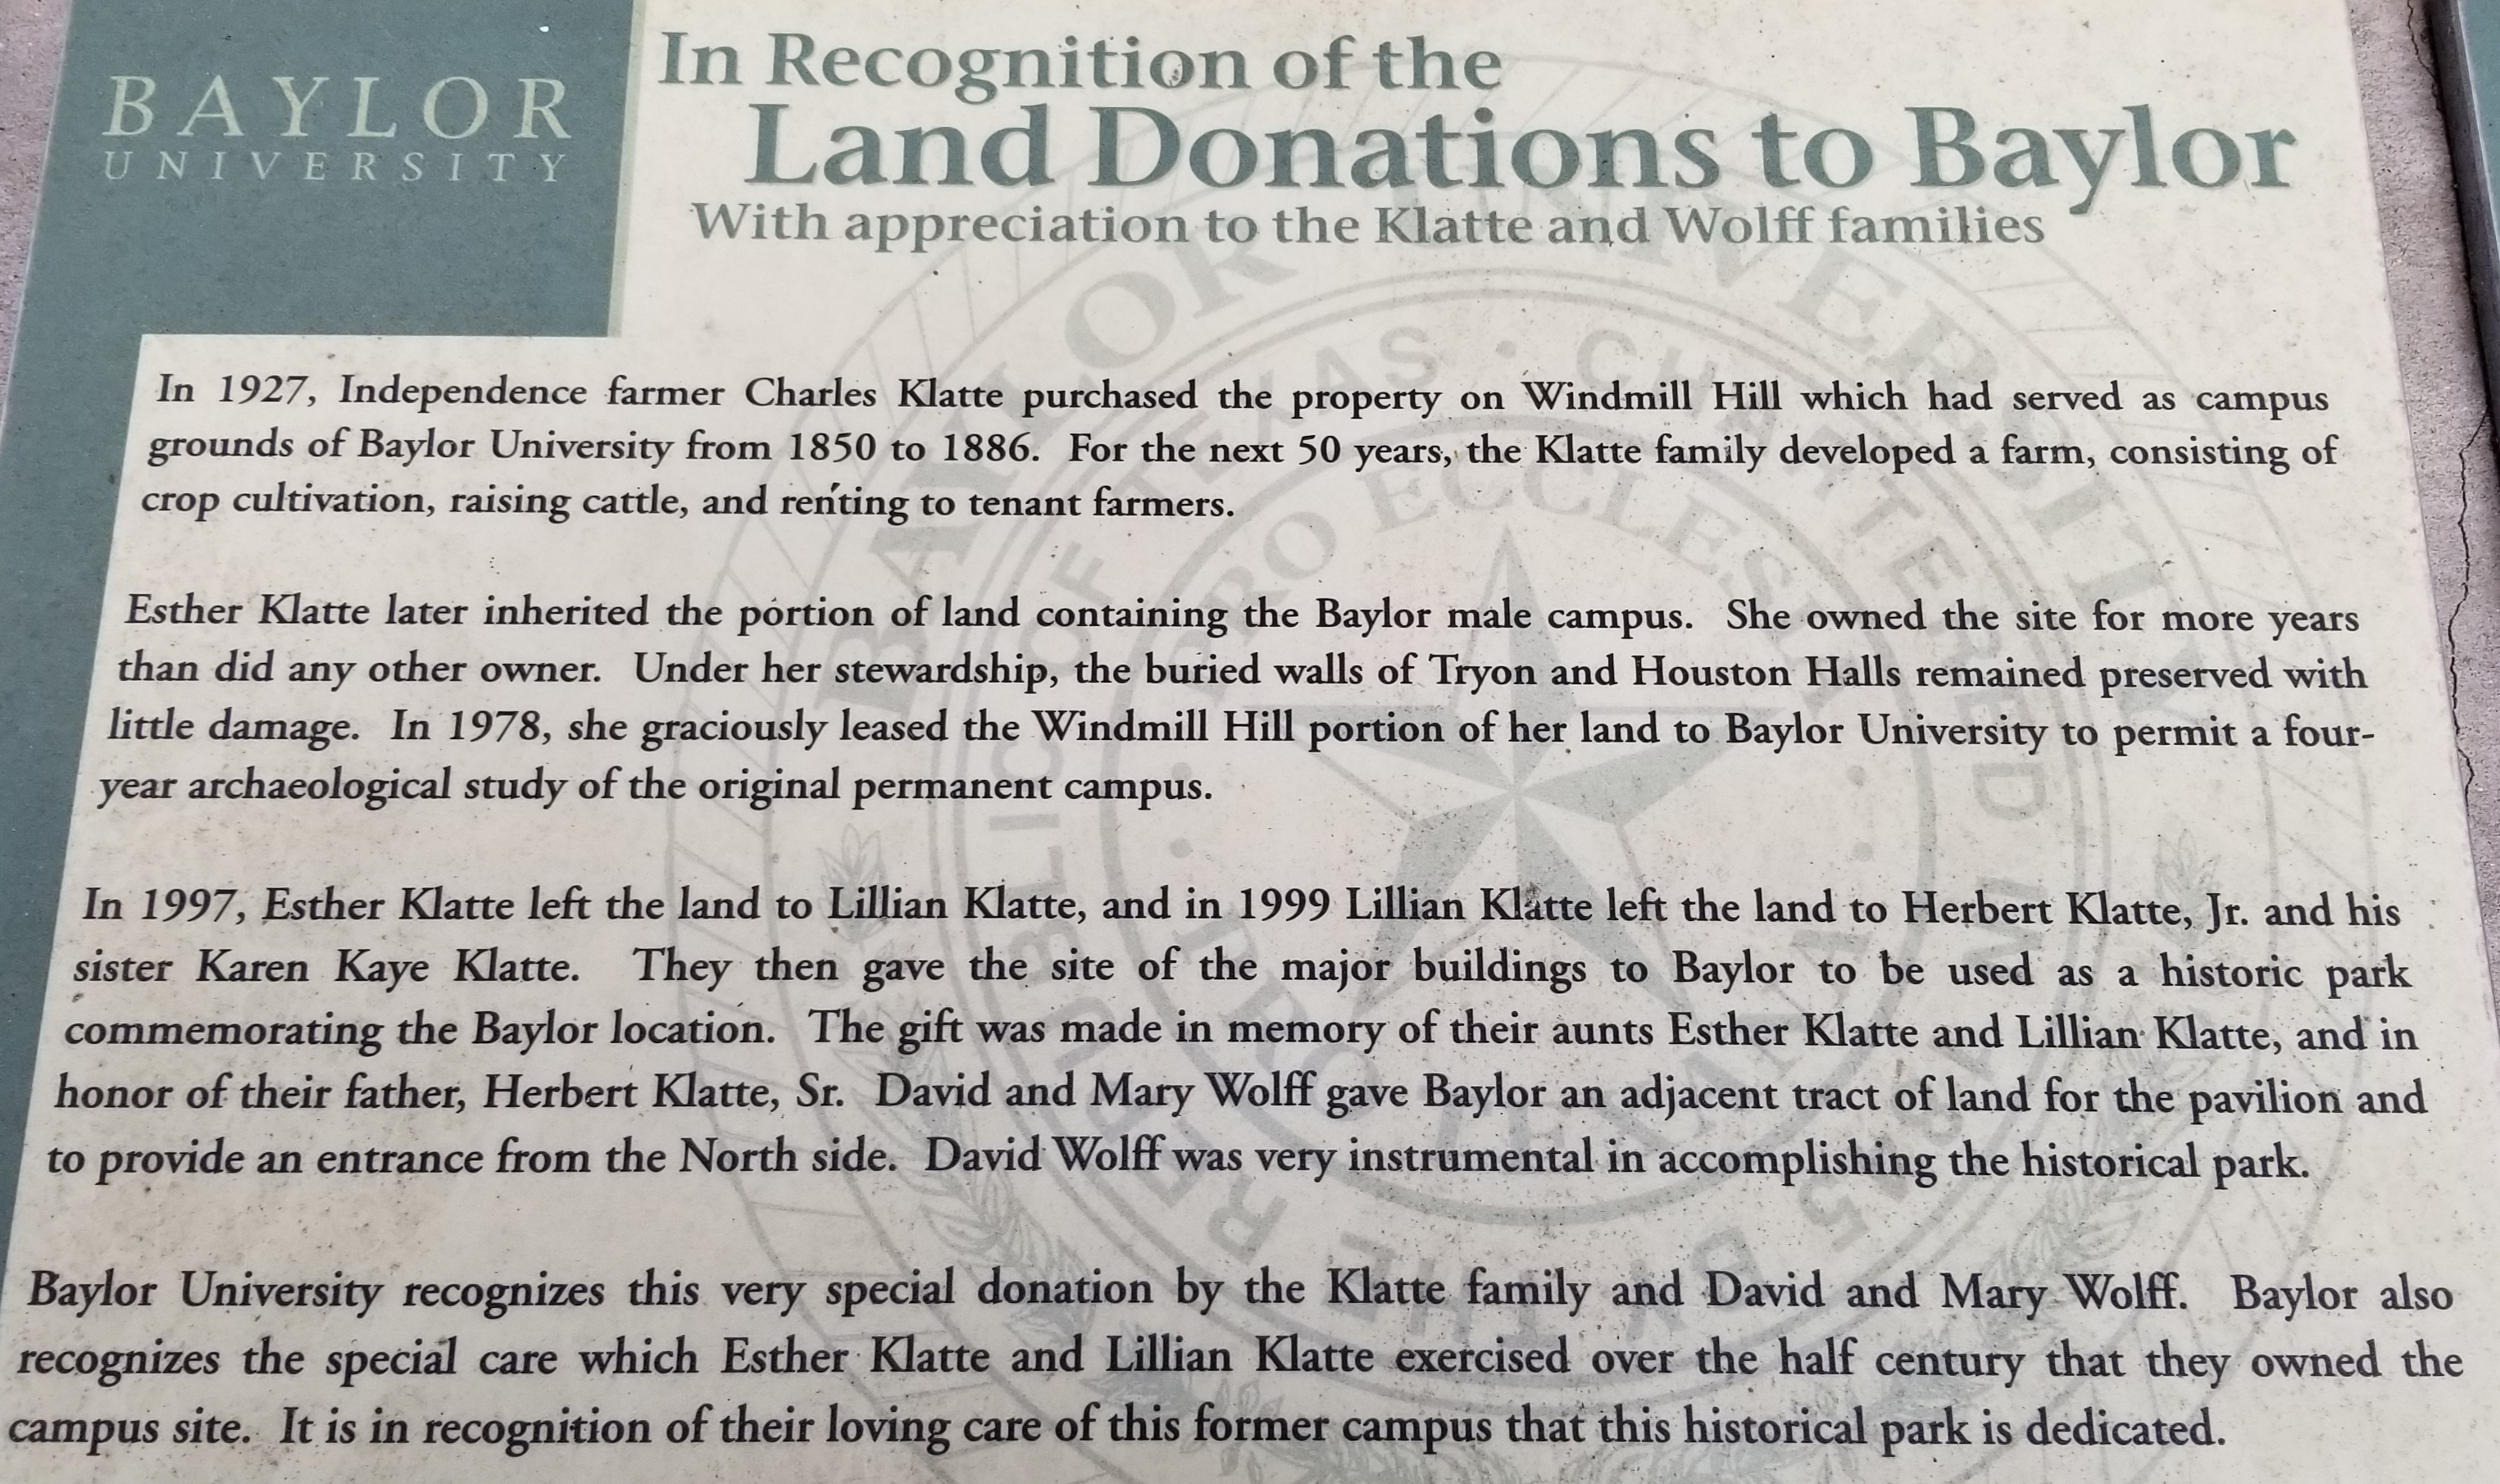 In Recognition of the Land Donations to Baylor Marker